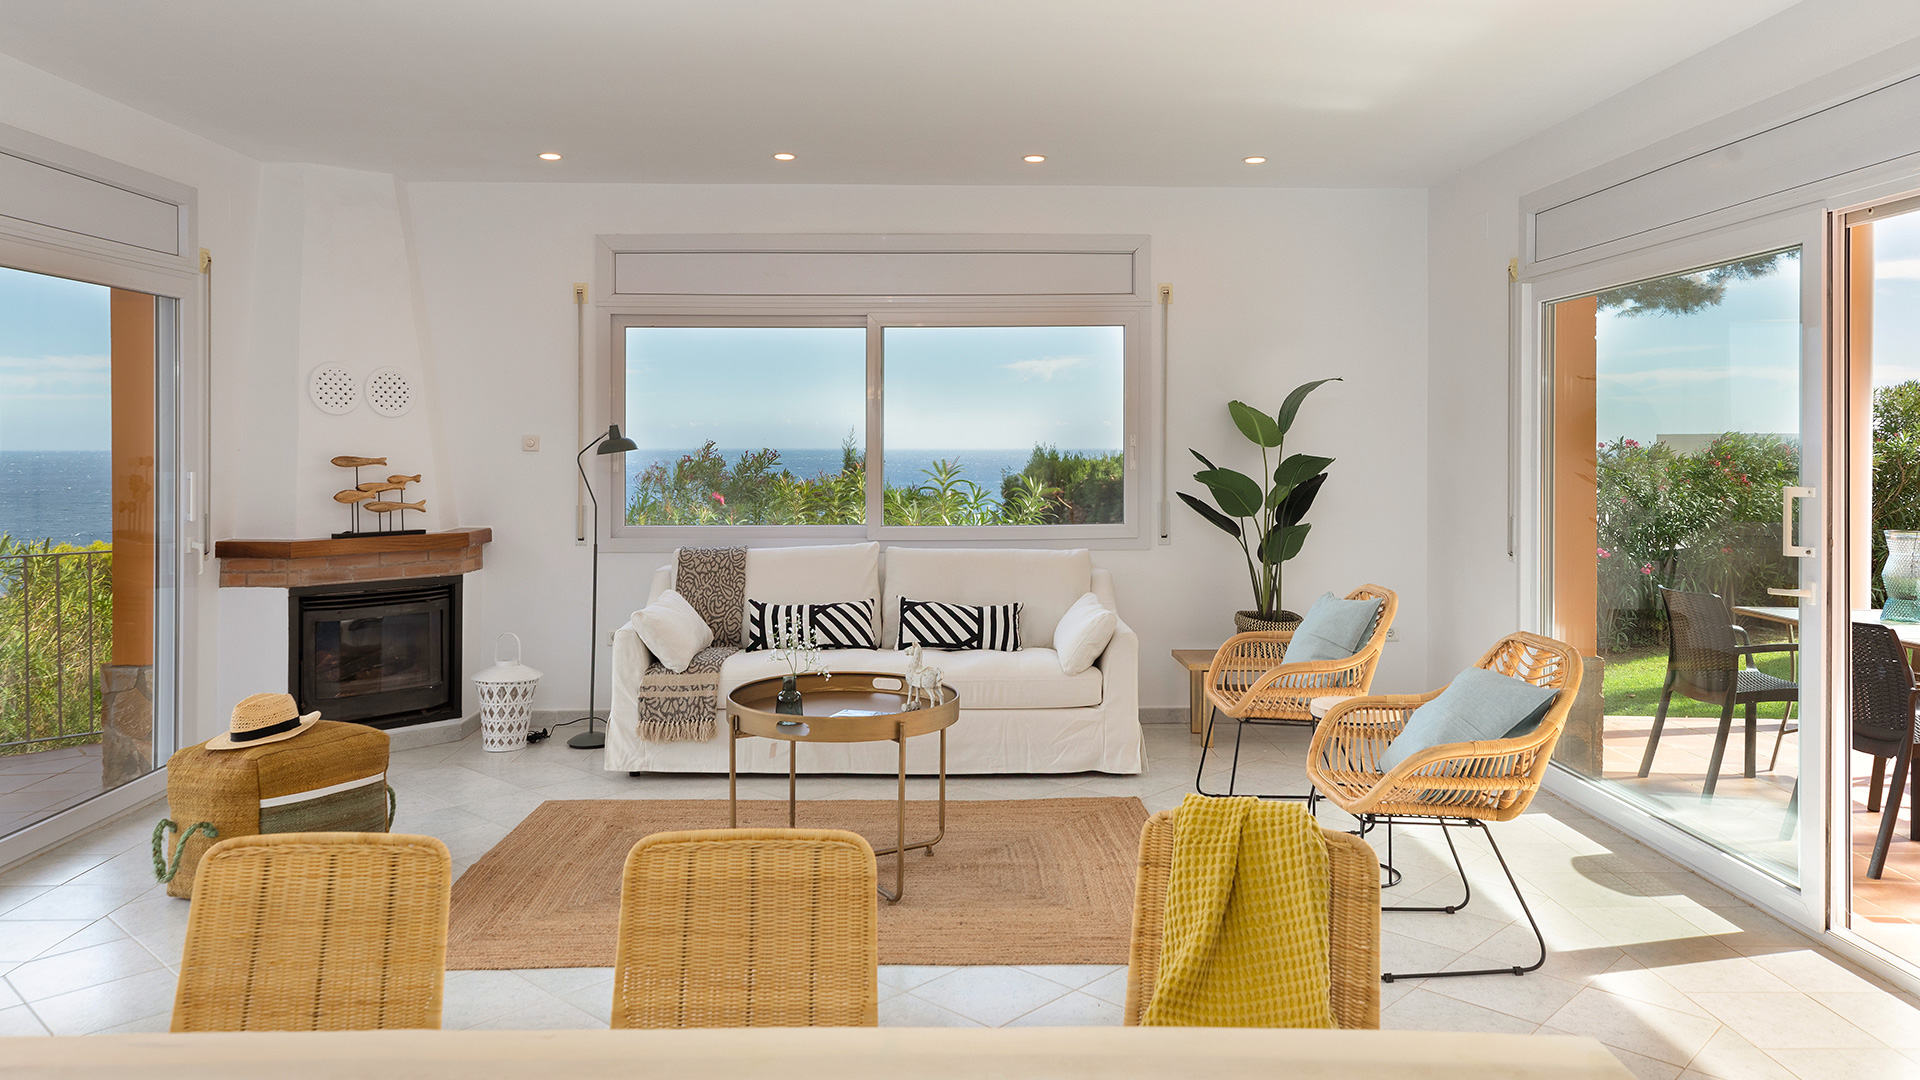 Home staging en una casa en Girona